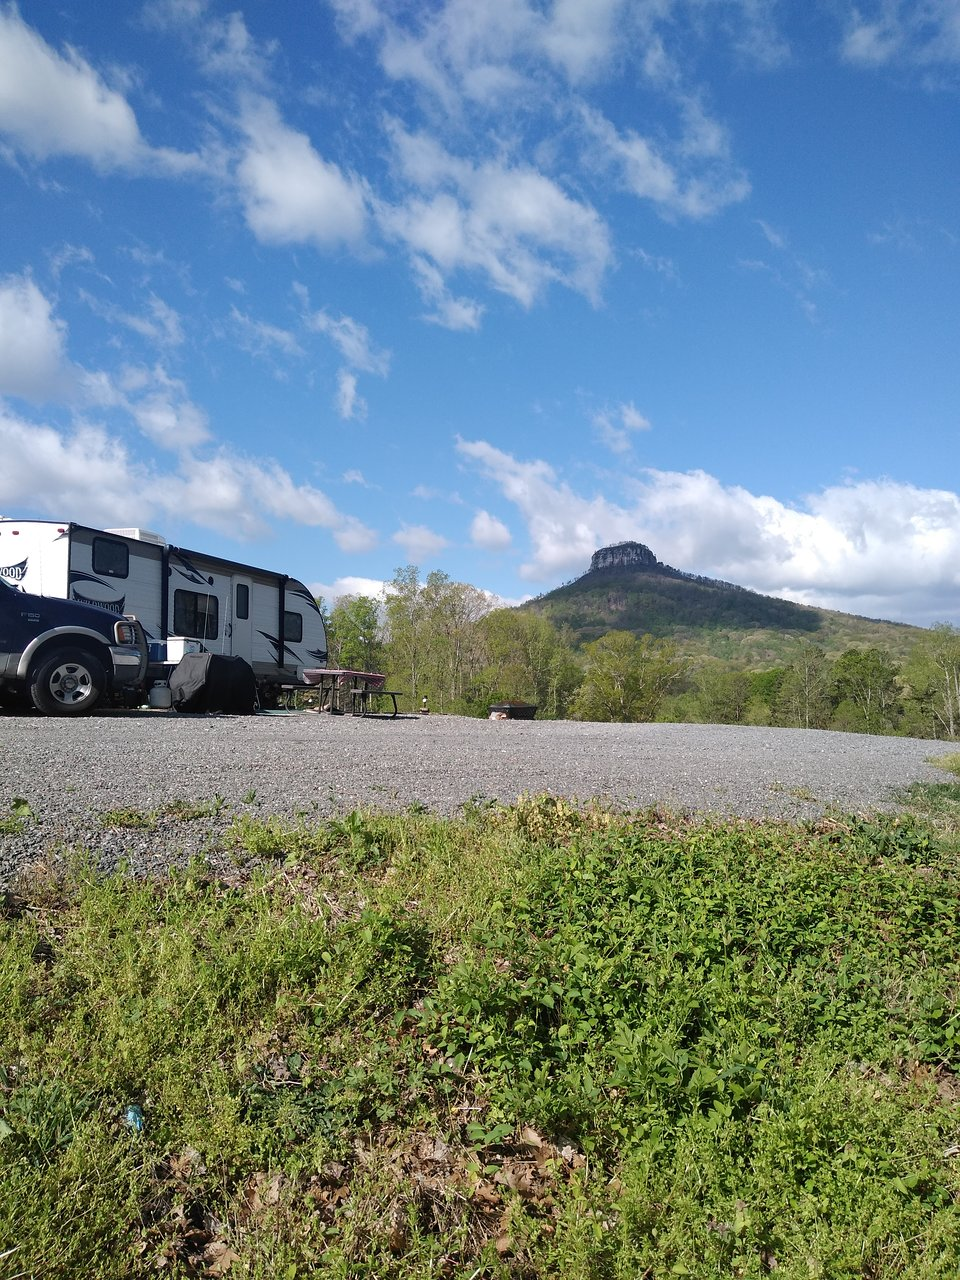 Top 10 Campgrounds & RV Parks in Winston Salem, North